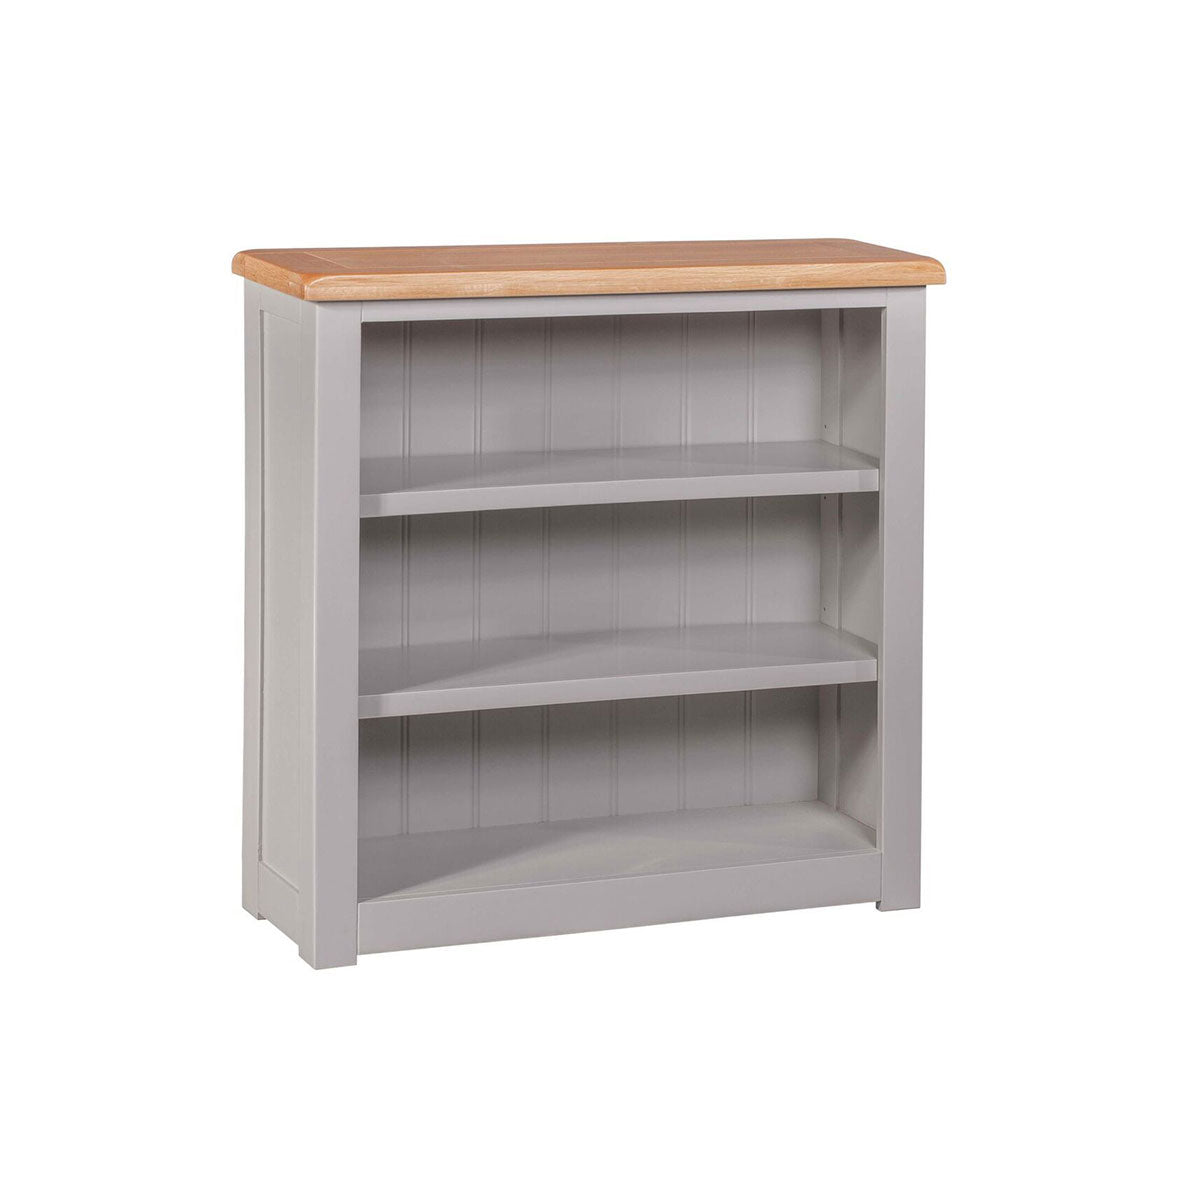 CINZA GREY SMALL BOOKCASE